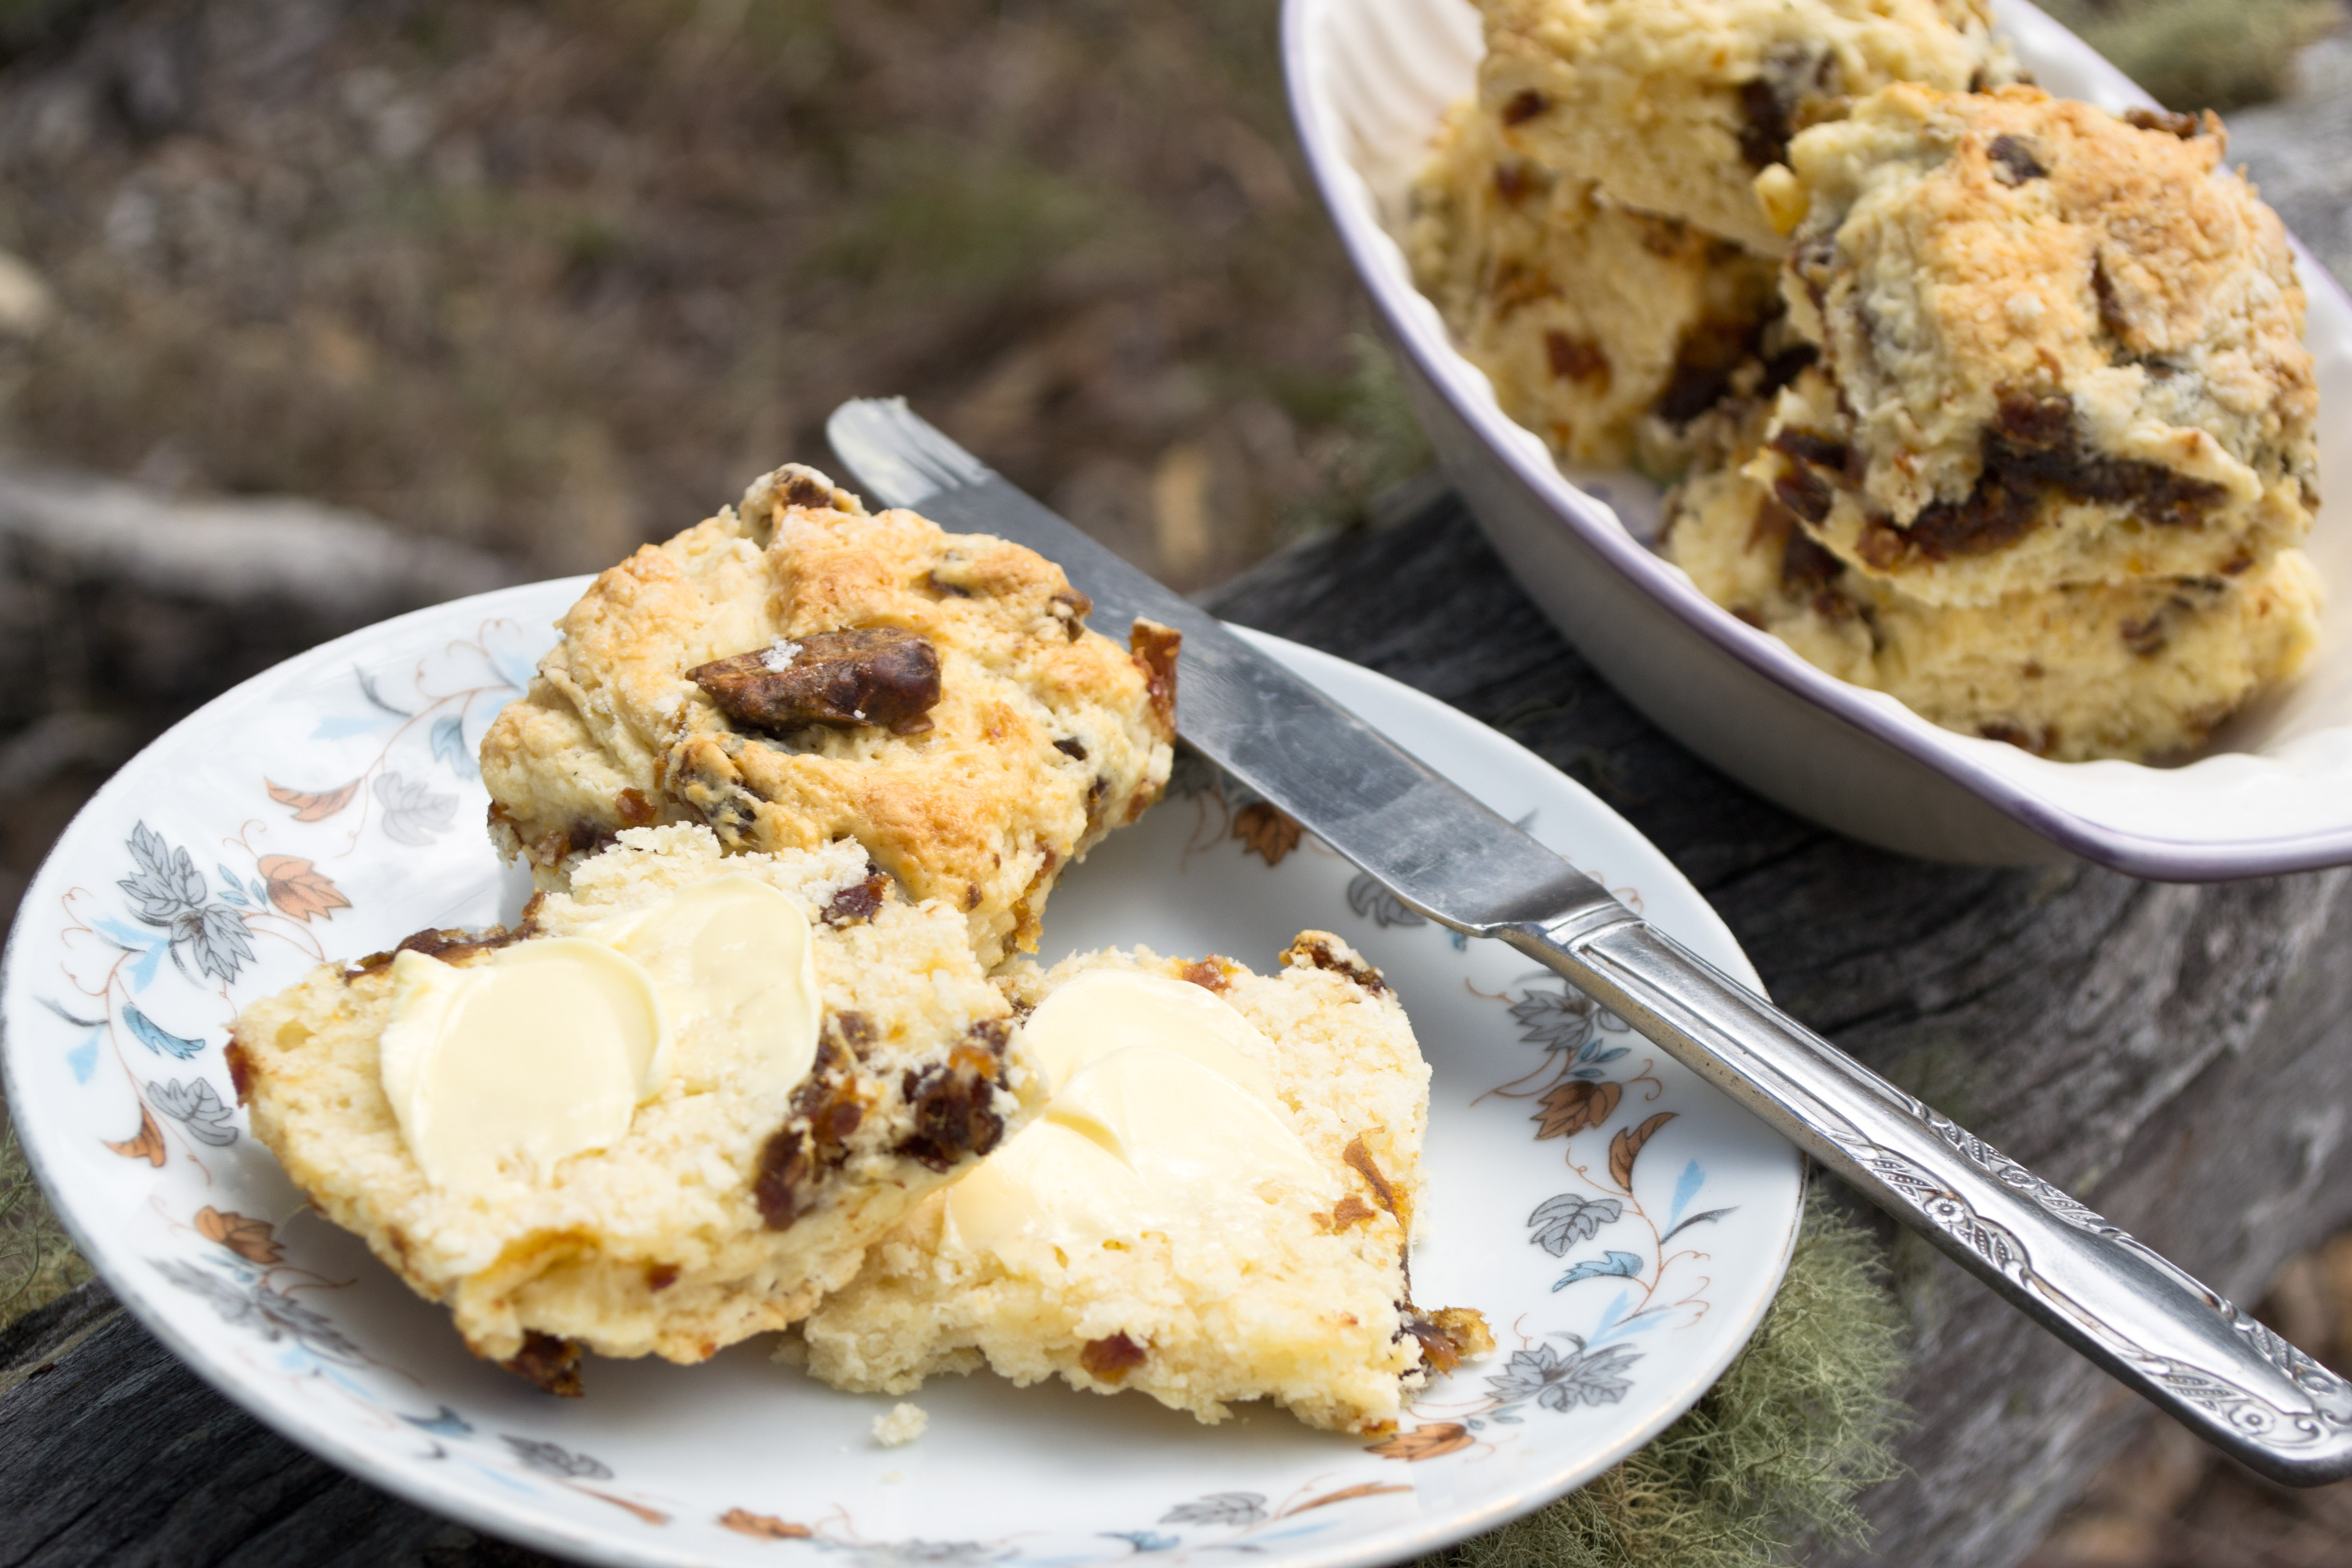 Cream Scones with Dates